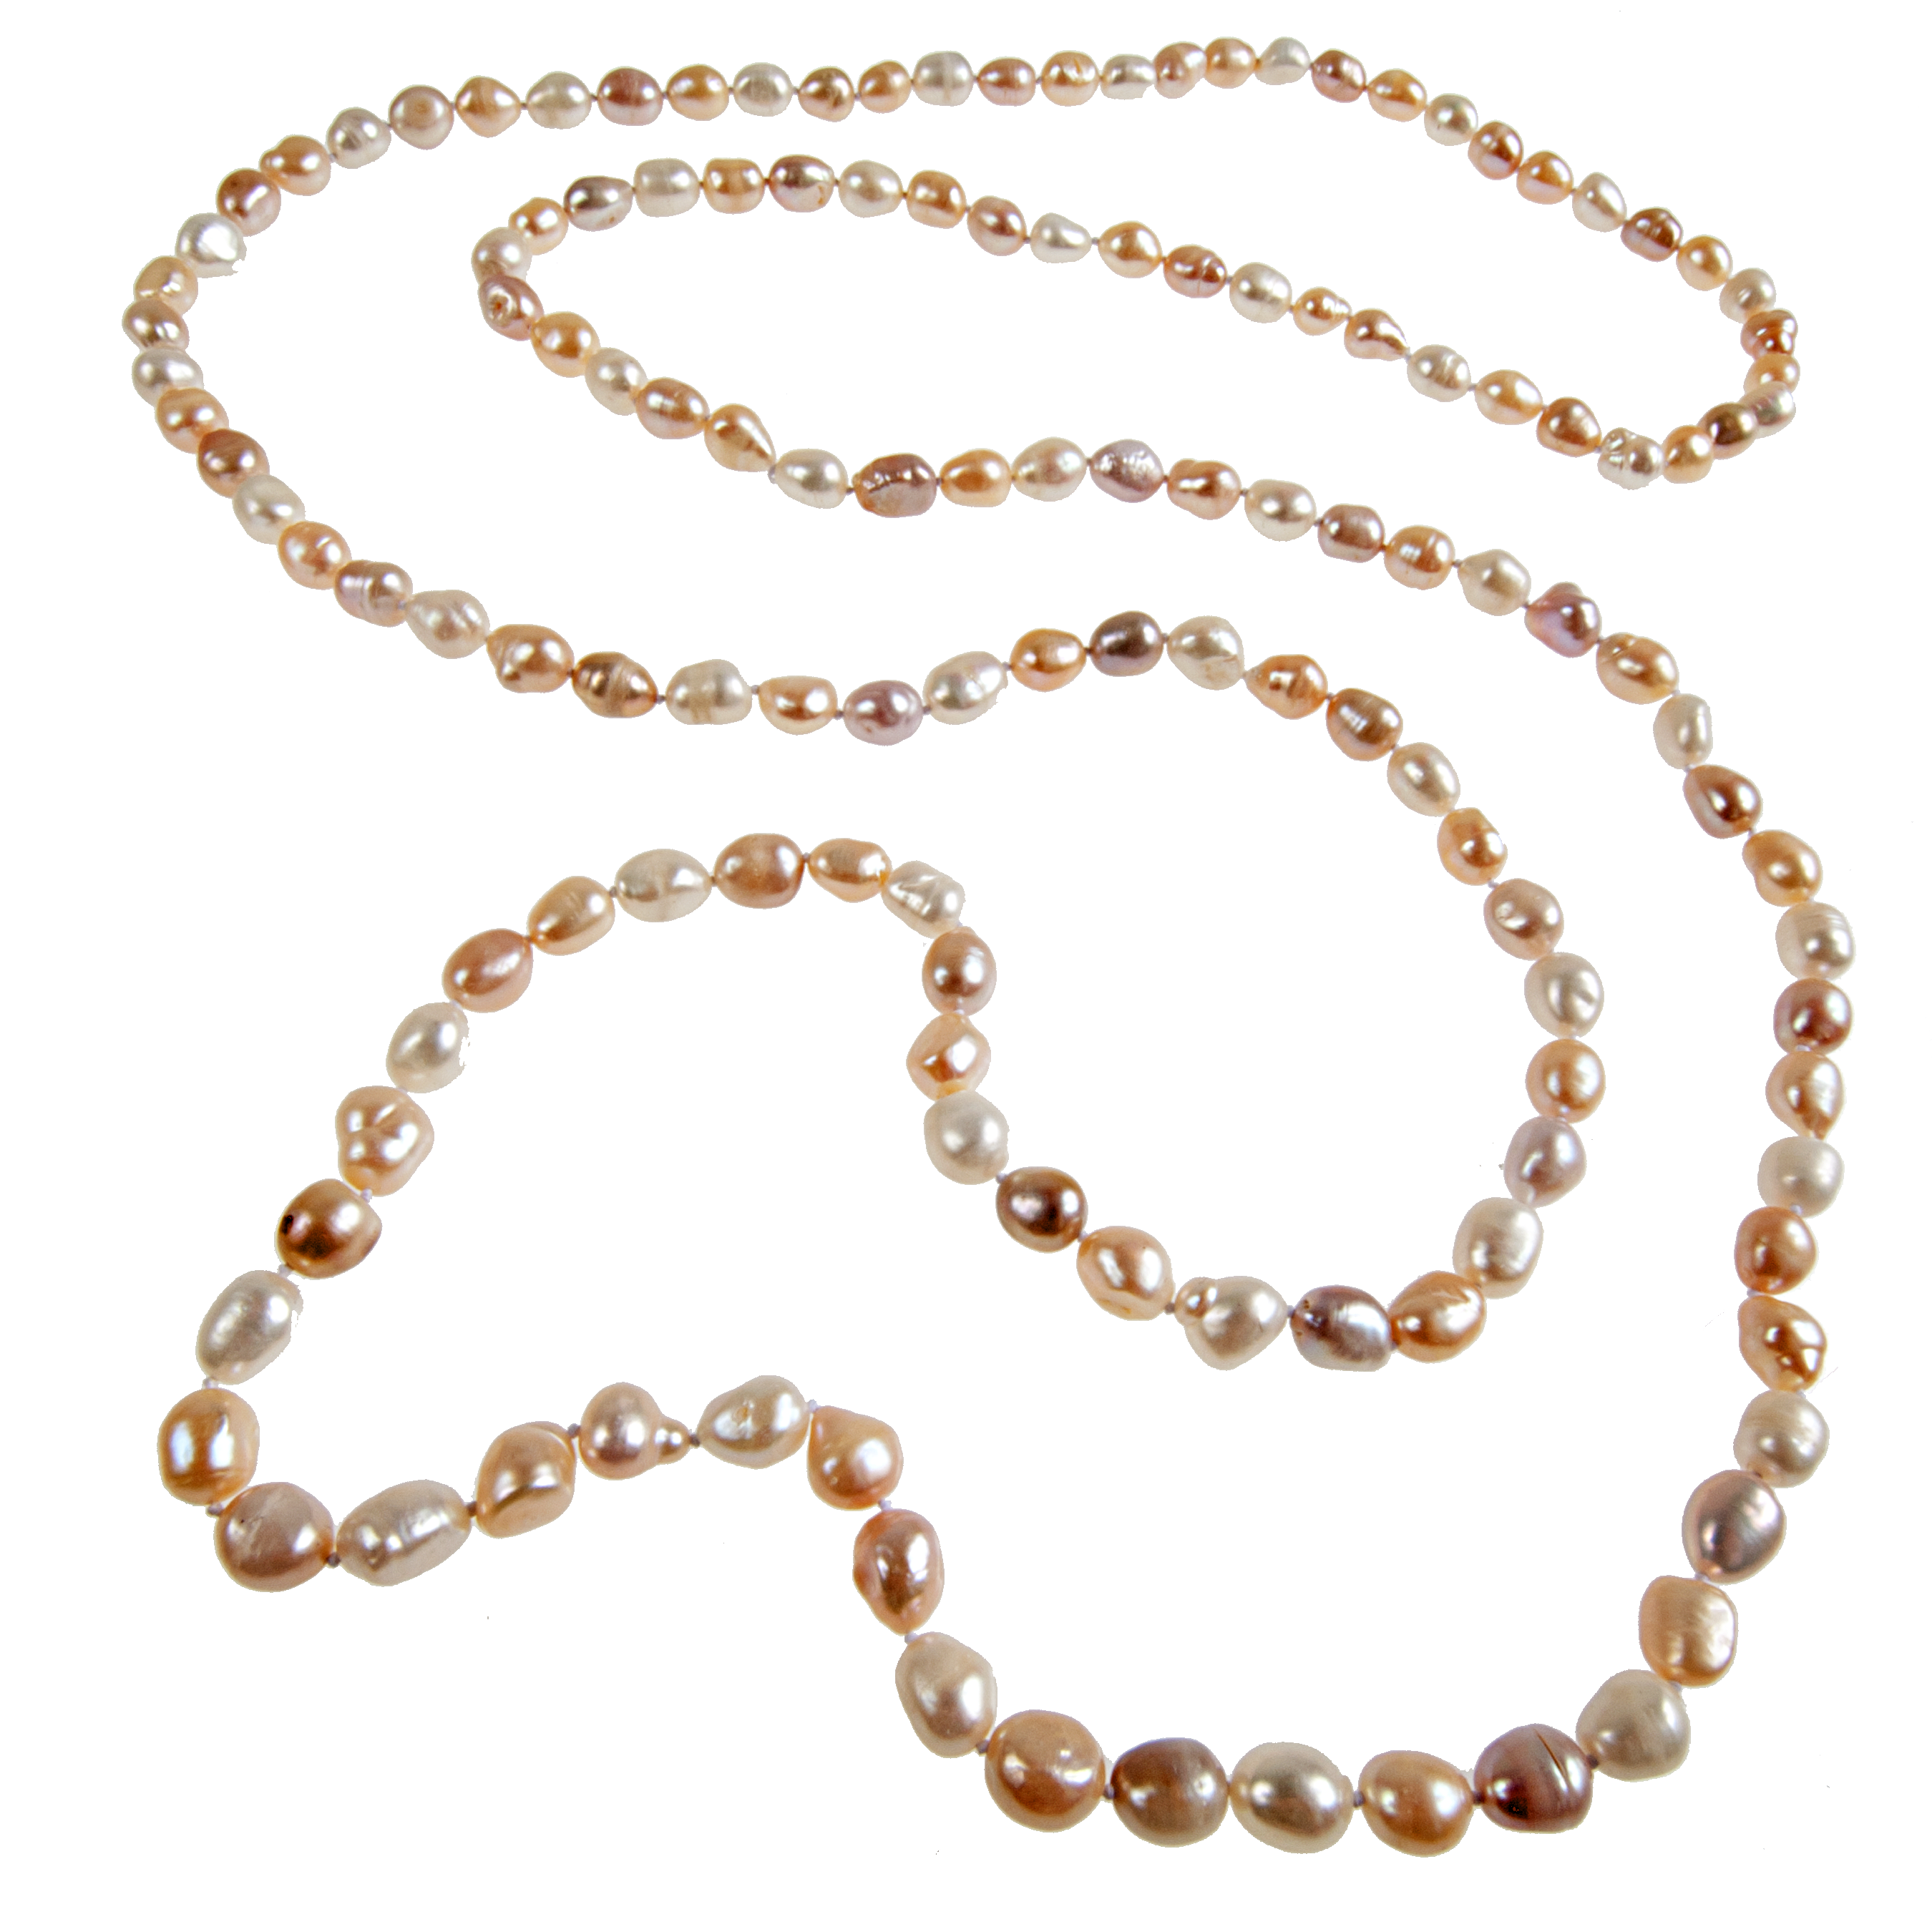 FIVE FOOT Hand-Knotted Cultured Pearl Necklace - KJKStyle